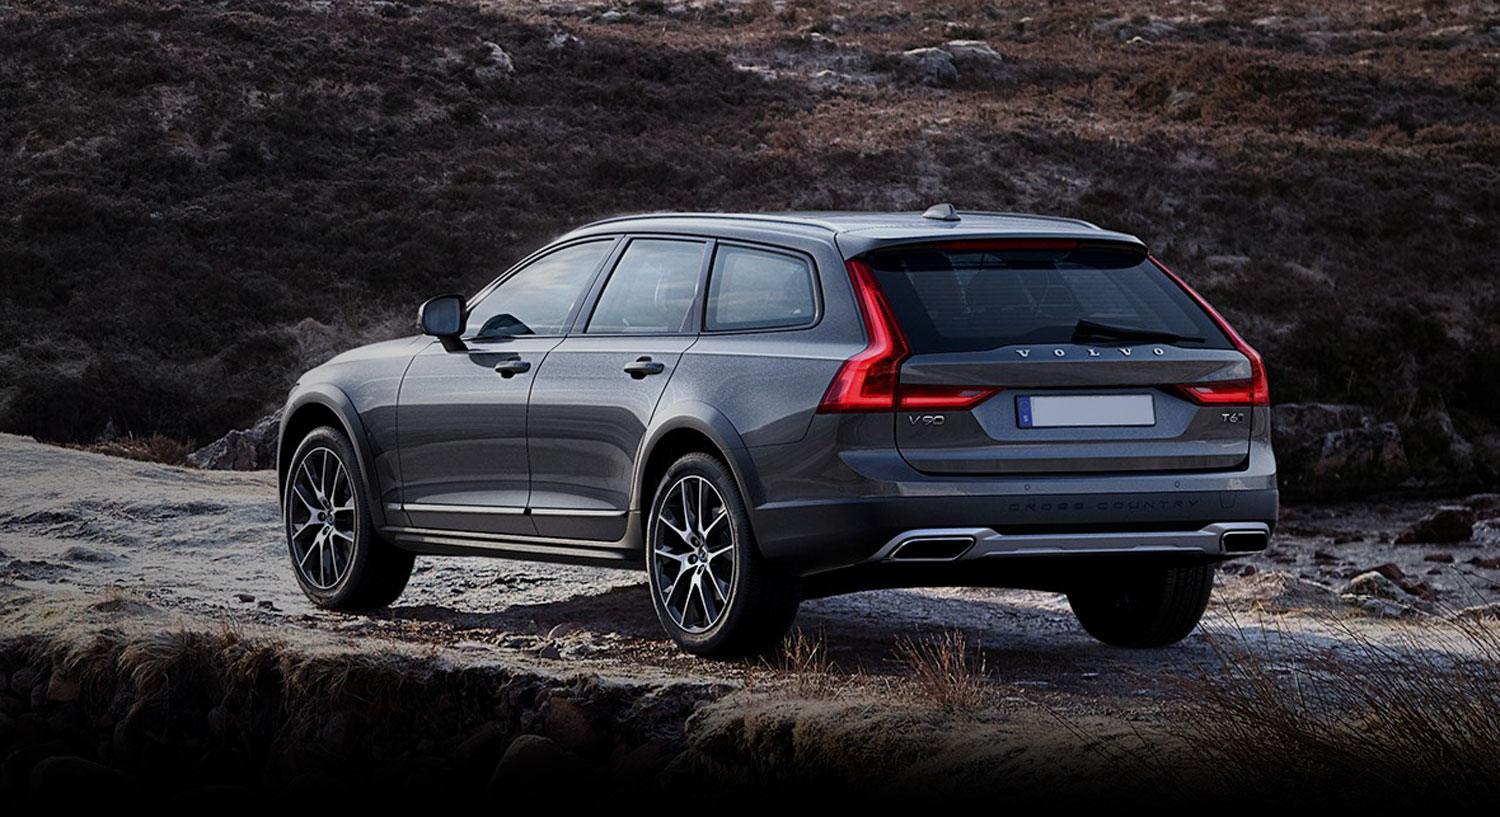 The new Volvo V90